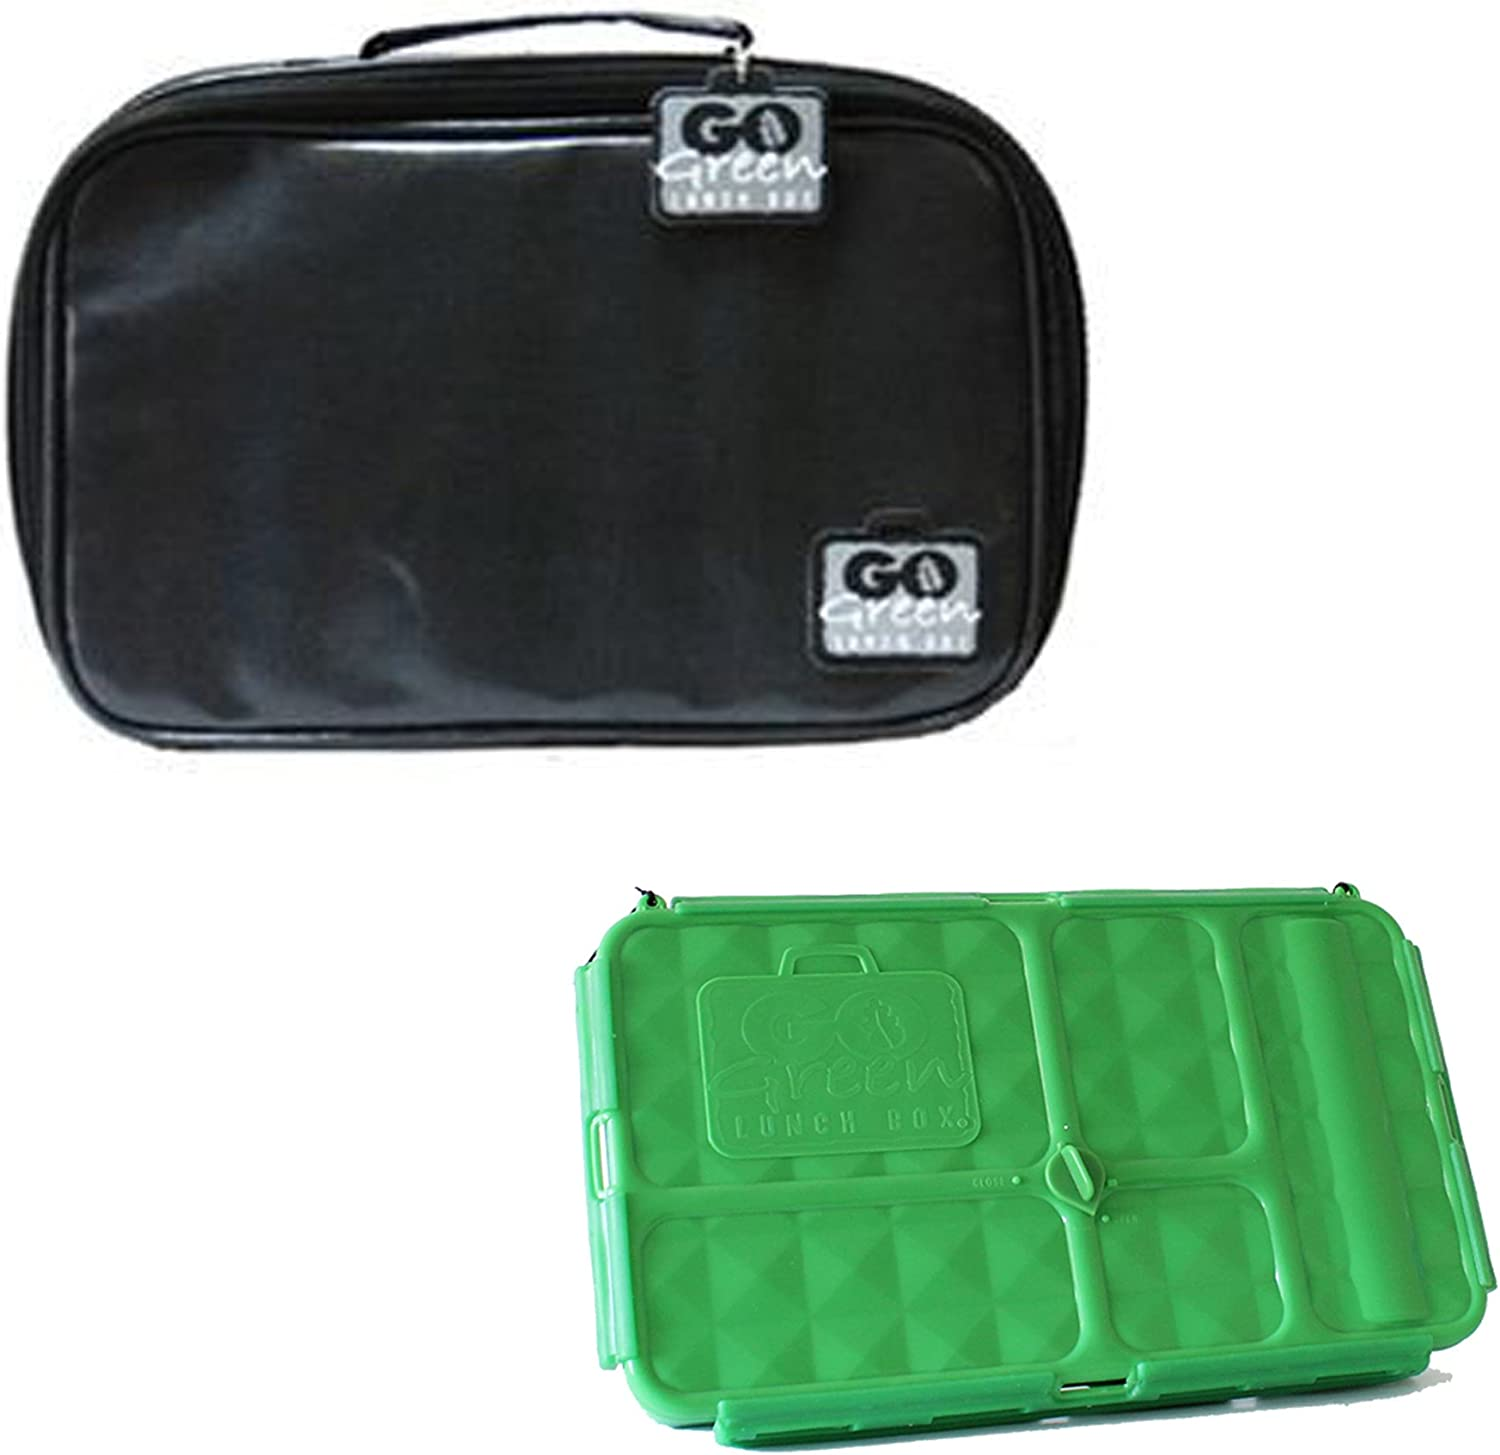 Go Green Lunch Box Set • 5 Compartment Leak-Proof Lunch Box ...